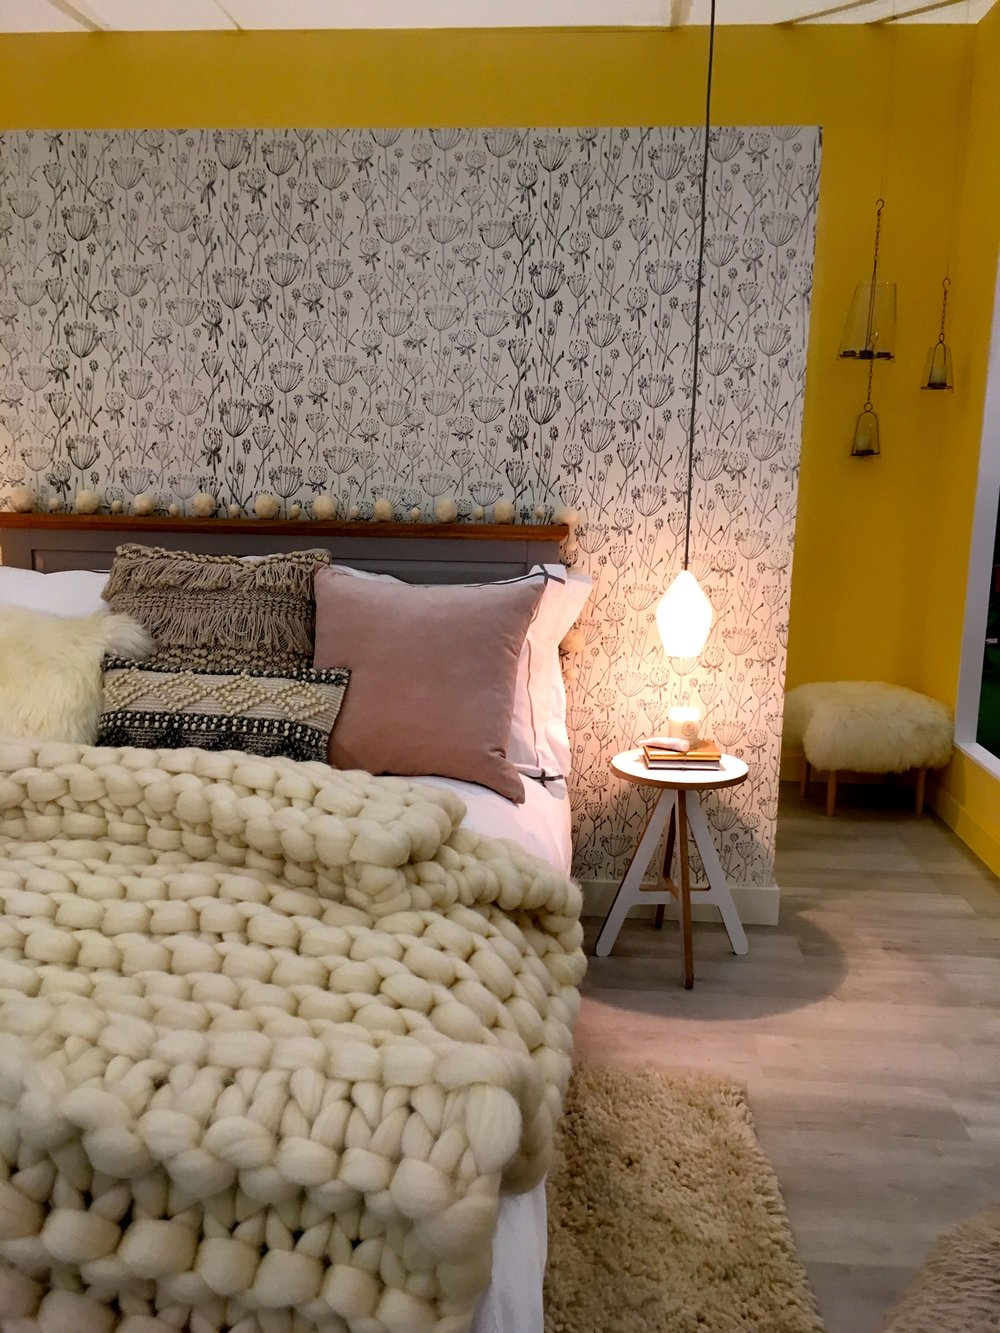 The bedroom room set at the Ideal Home Show